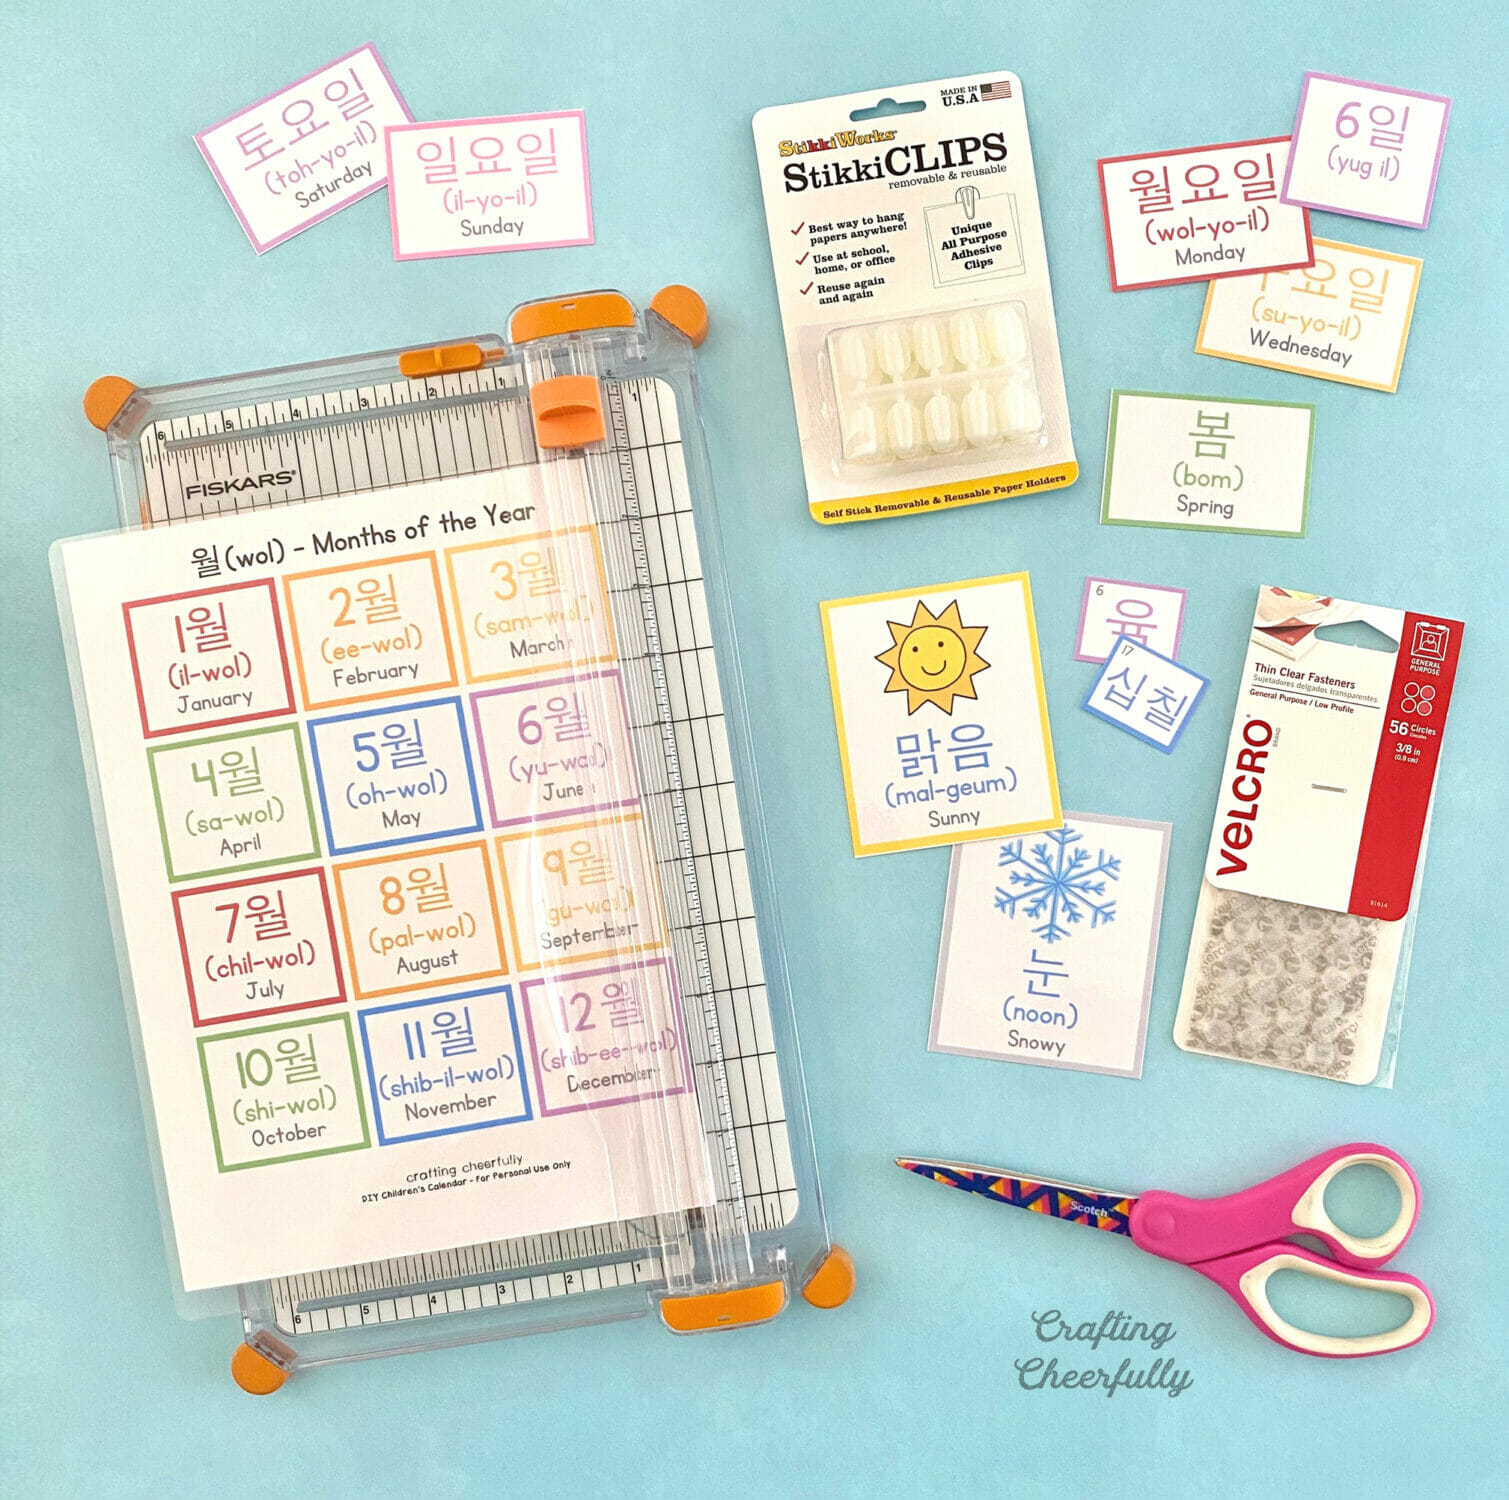 Printables in Korean and English to make a children's calendar.